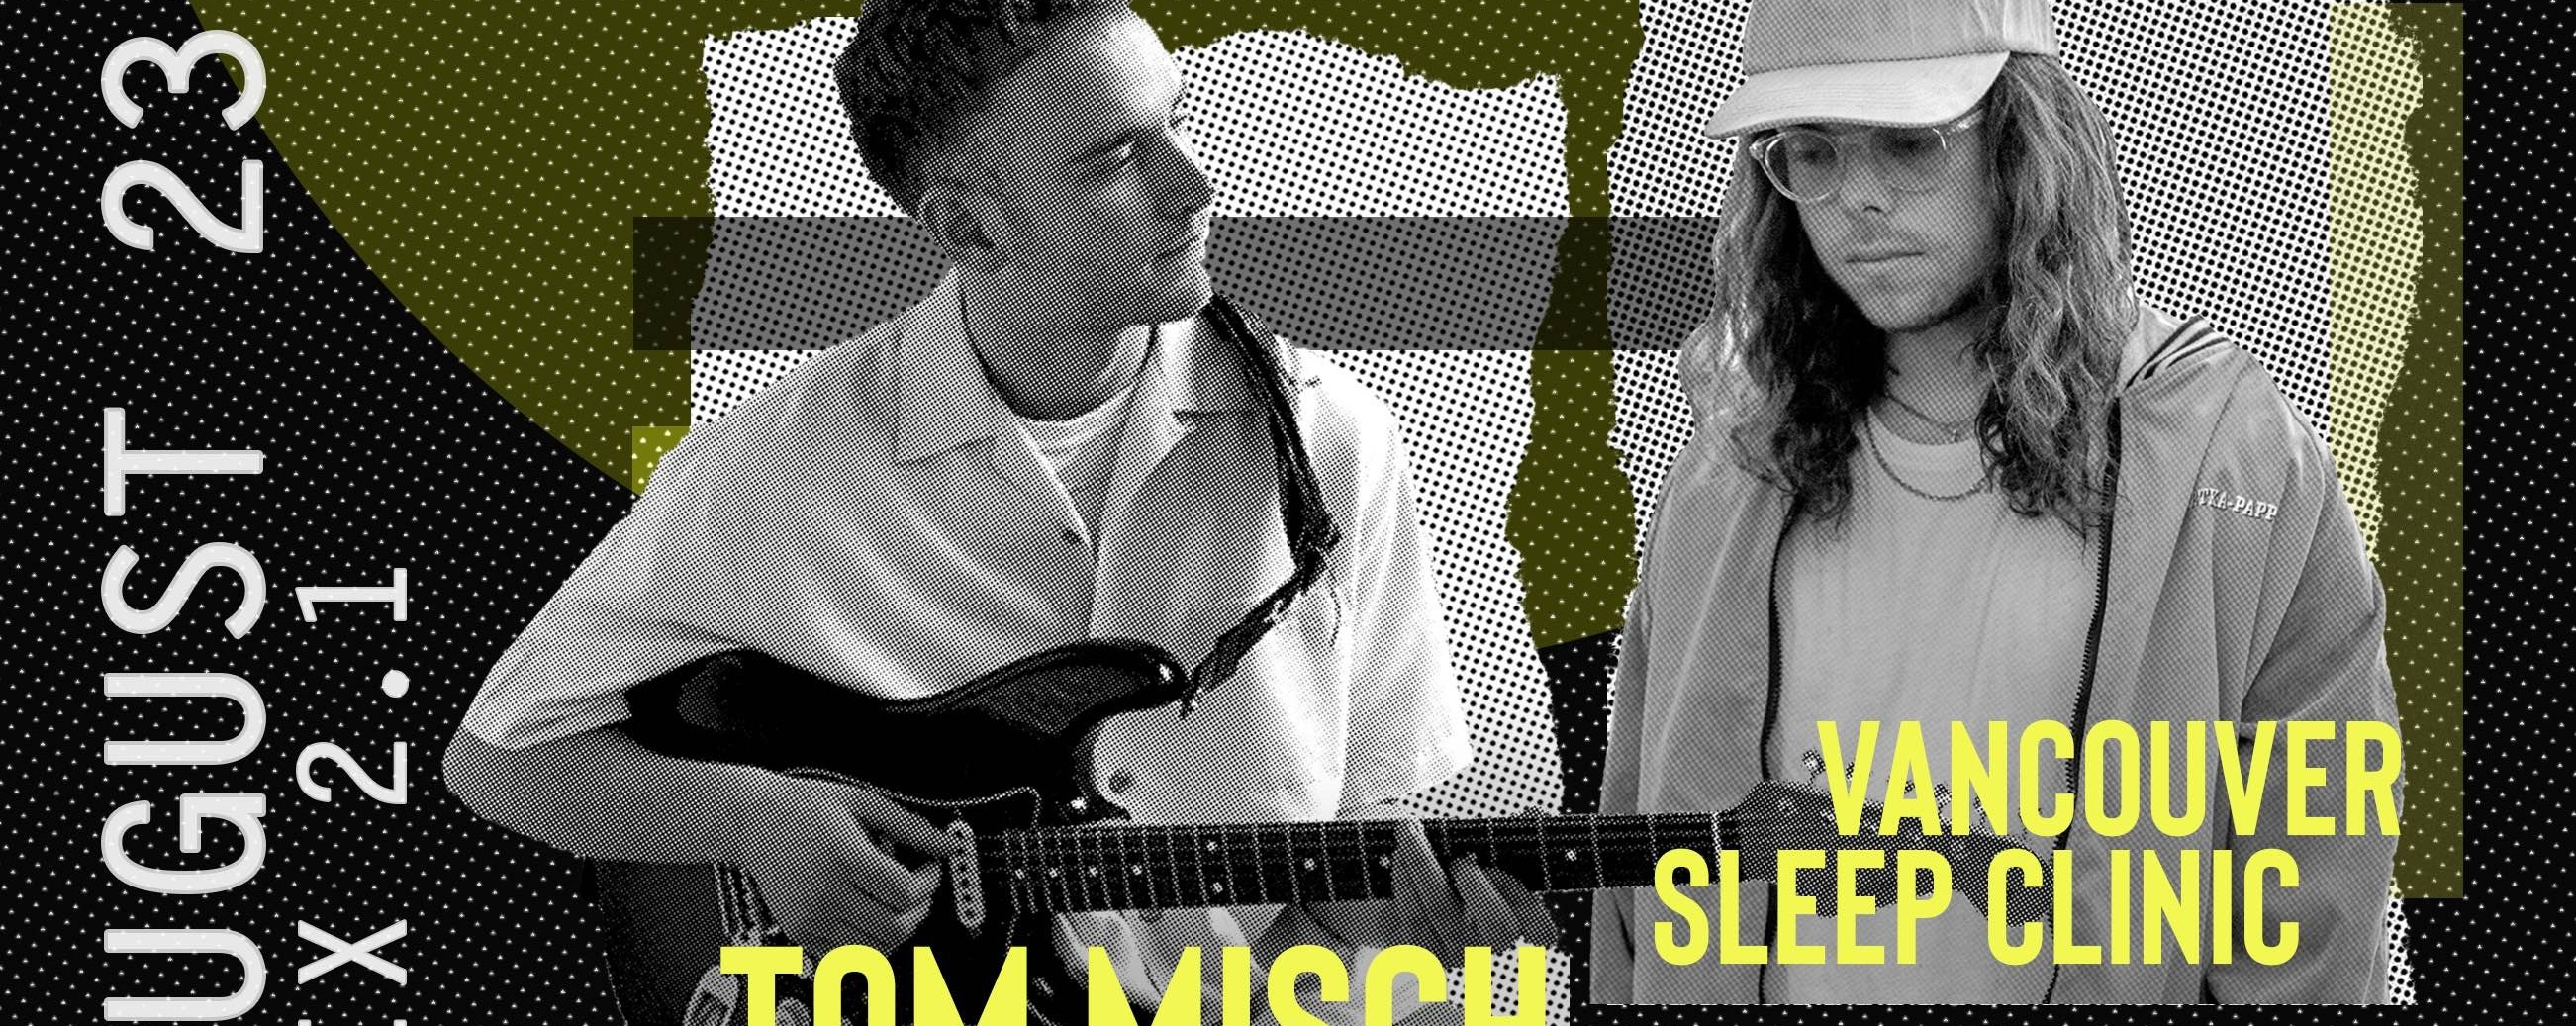 Karpos Live Mix 2.1 Tom Misch &Vancouver Sleep Clinic